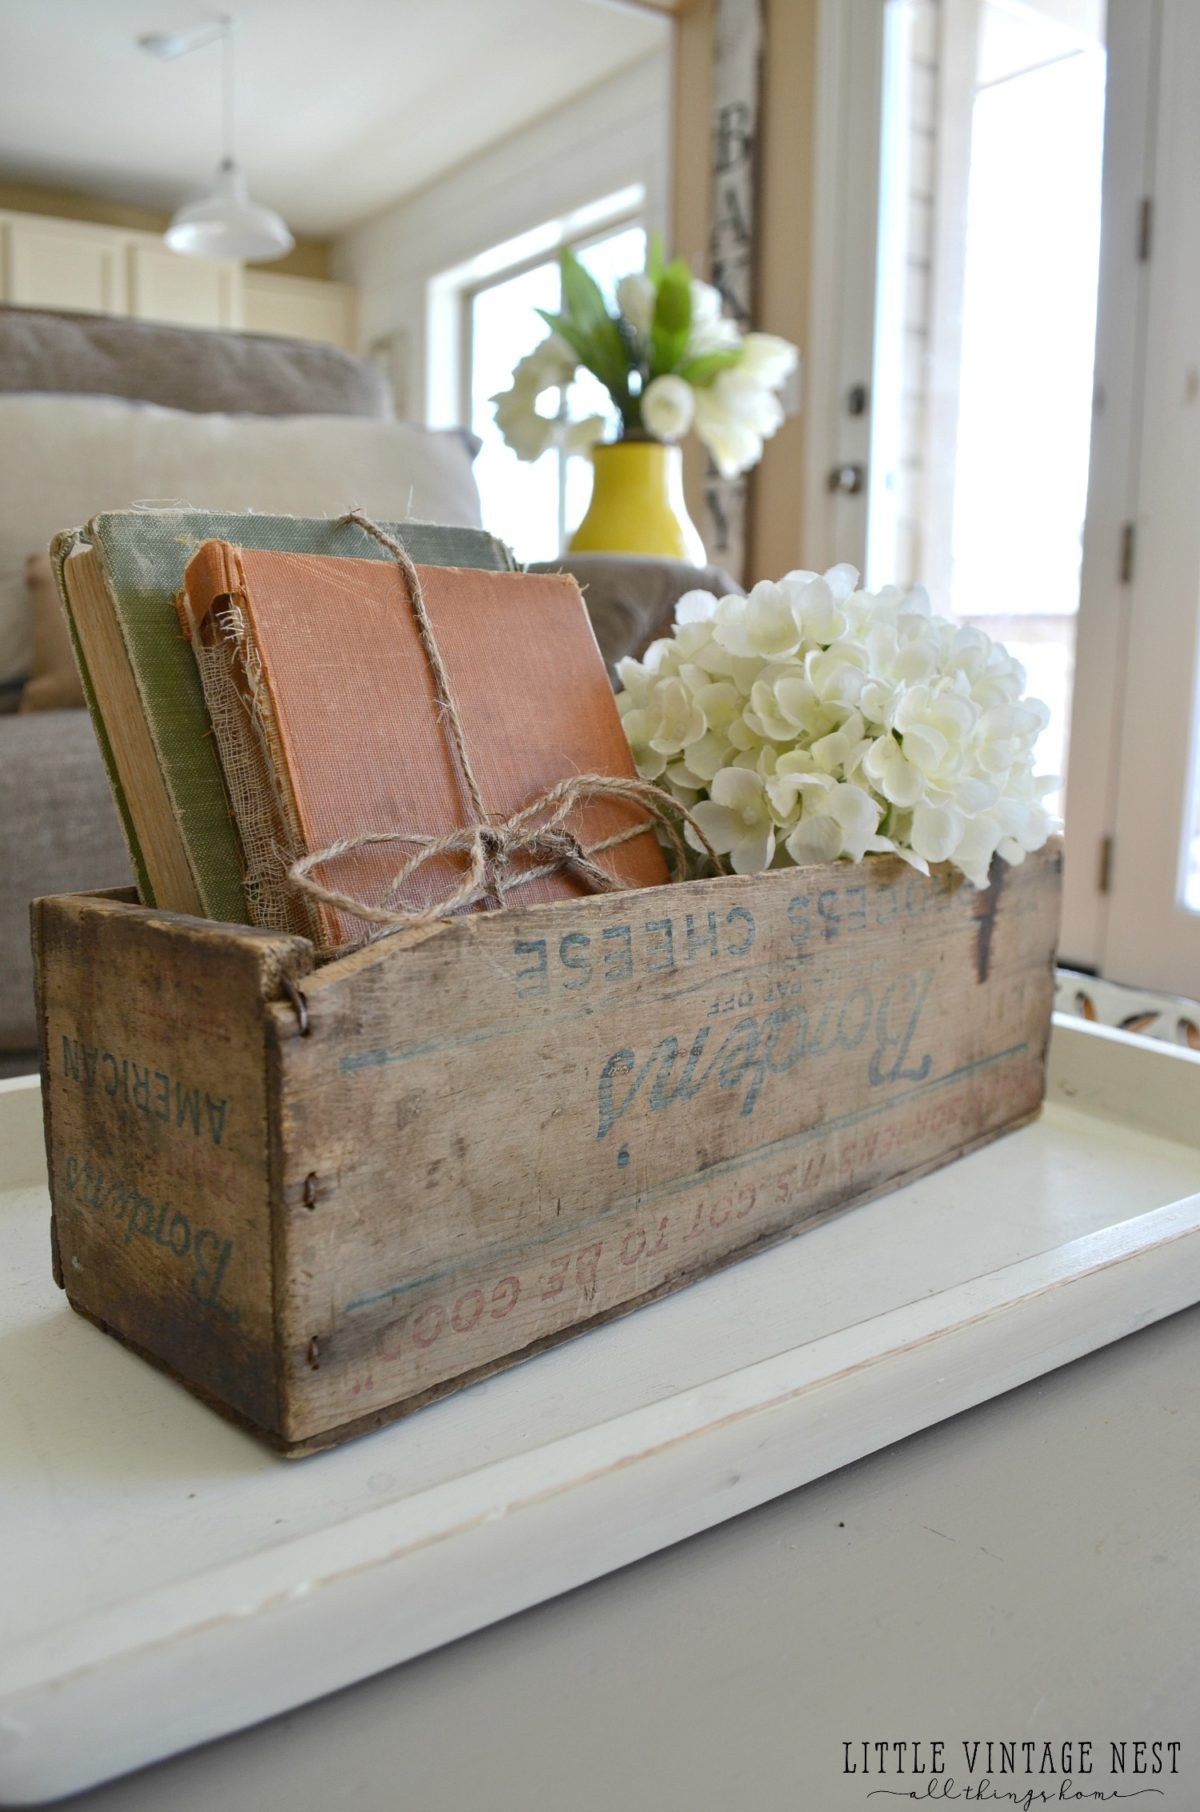 How to decorate with vintage decor little vintage nest - Home decor books ...